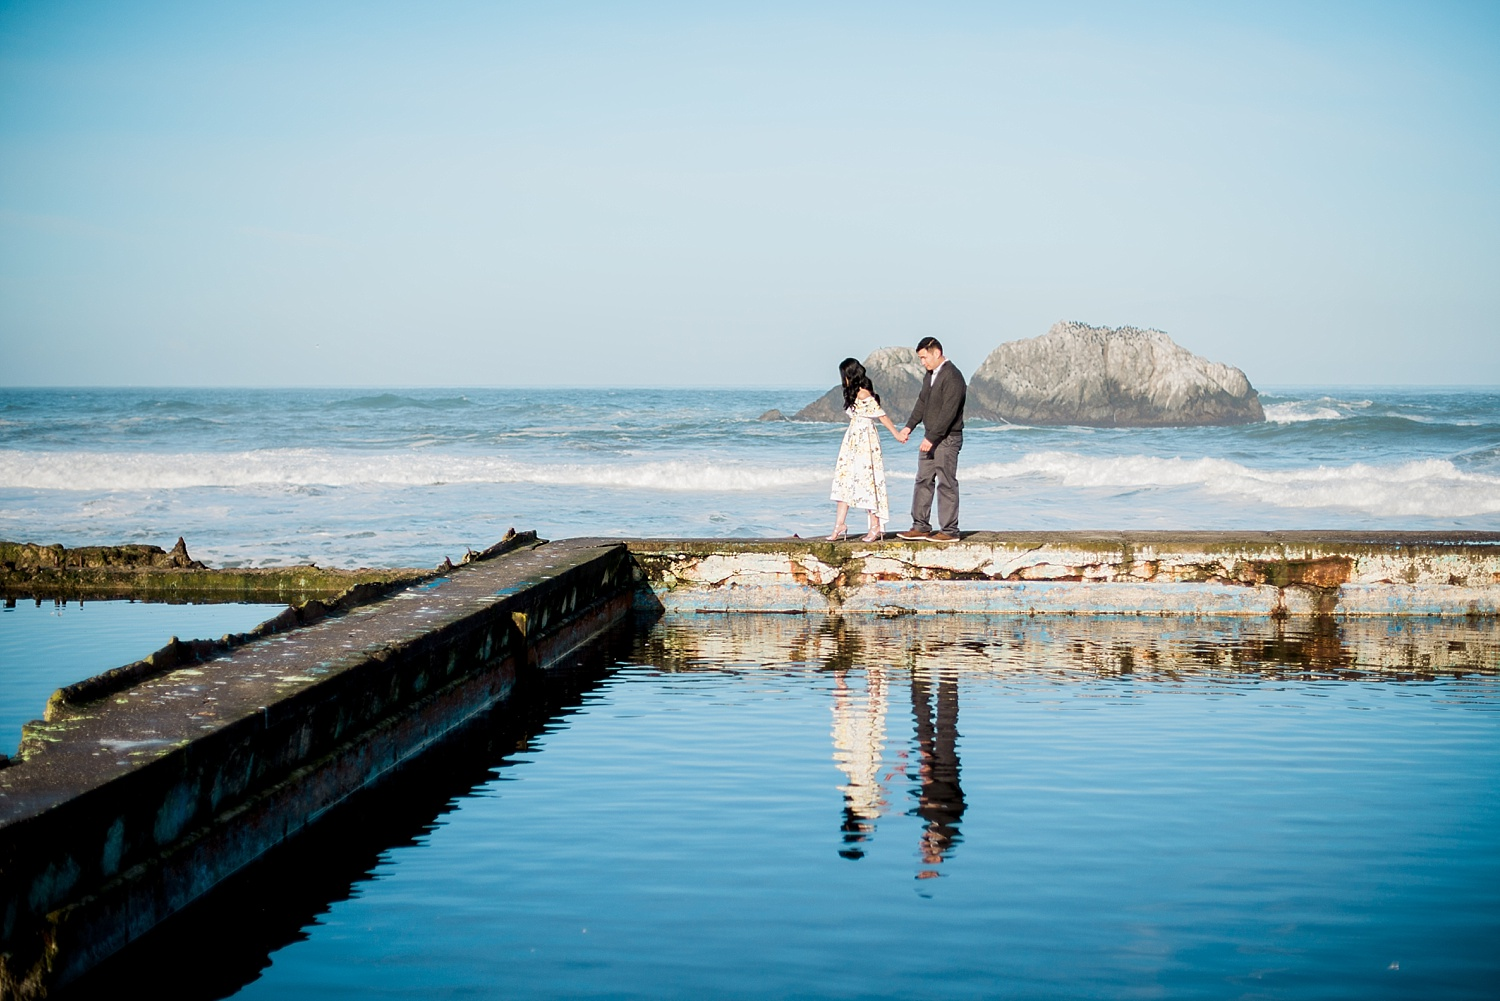 jennifer-jayn-photography-san-francisco-sutro-baths-engagement-session_0011.jpg